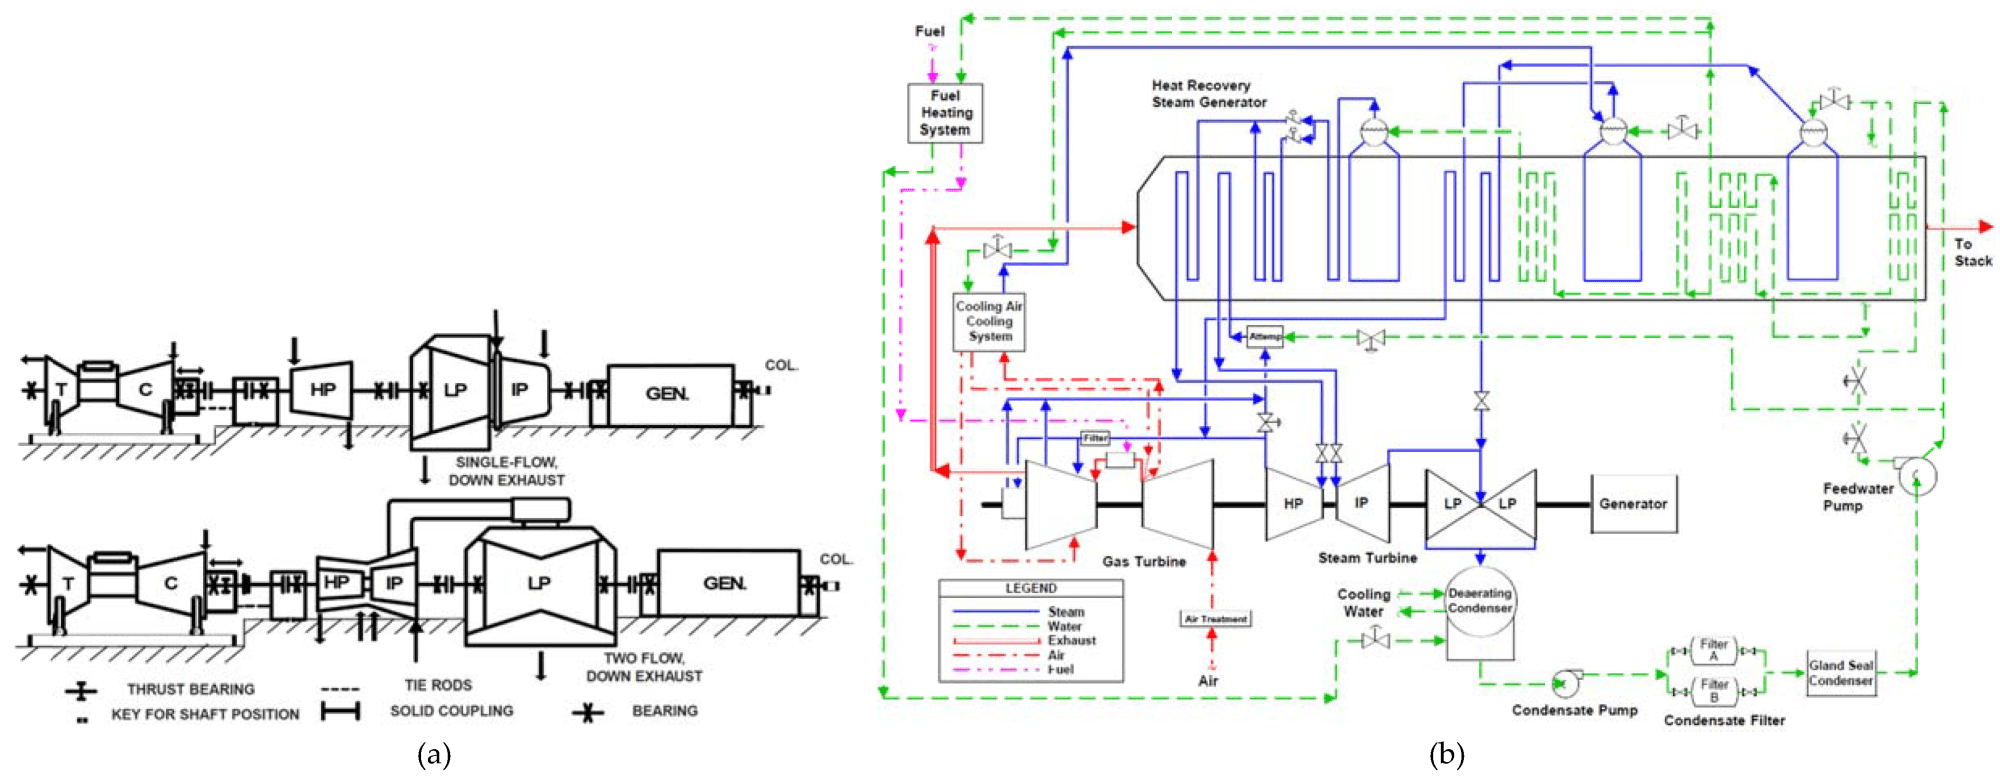 hight resolution of cycle diagram likewise thermal power plant on oil power plant likewise power plant schematic diagram on oil power plant diagram